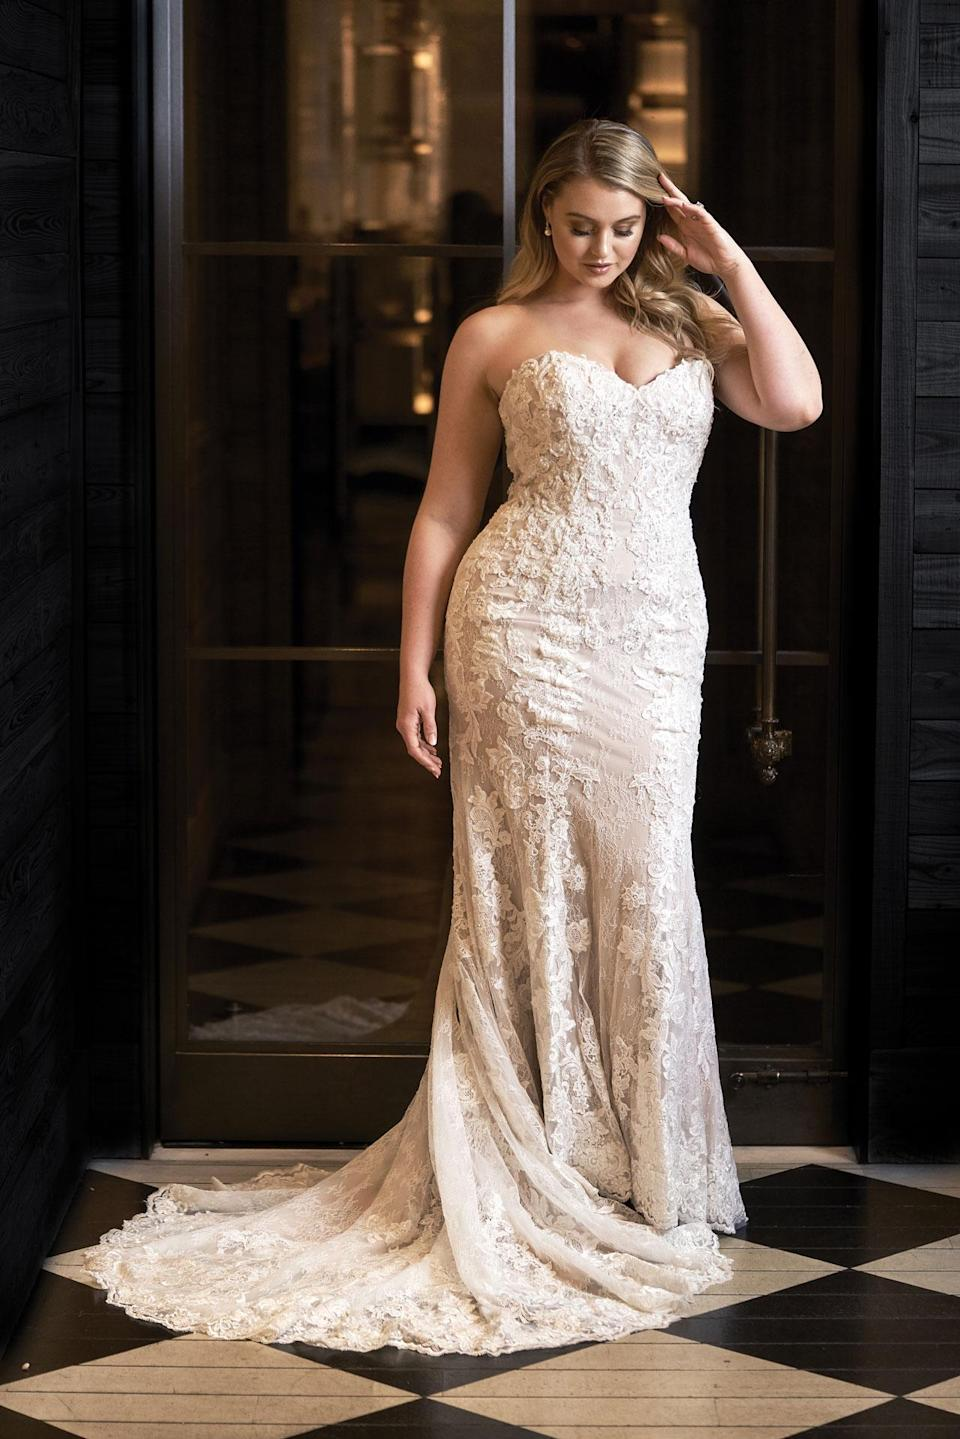 <p>Lawrence wears a strapless lace gown by Justin Alexander. (Photo: courtesy of Justin Alexander) </p>